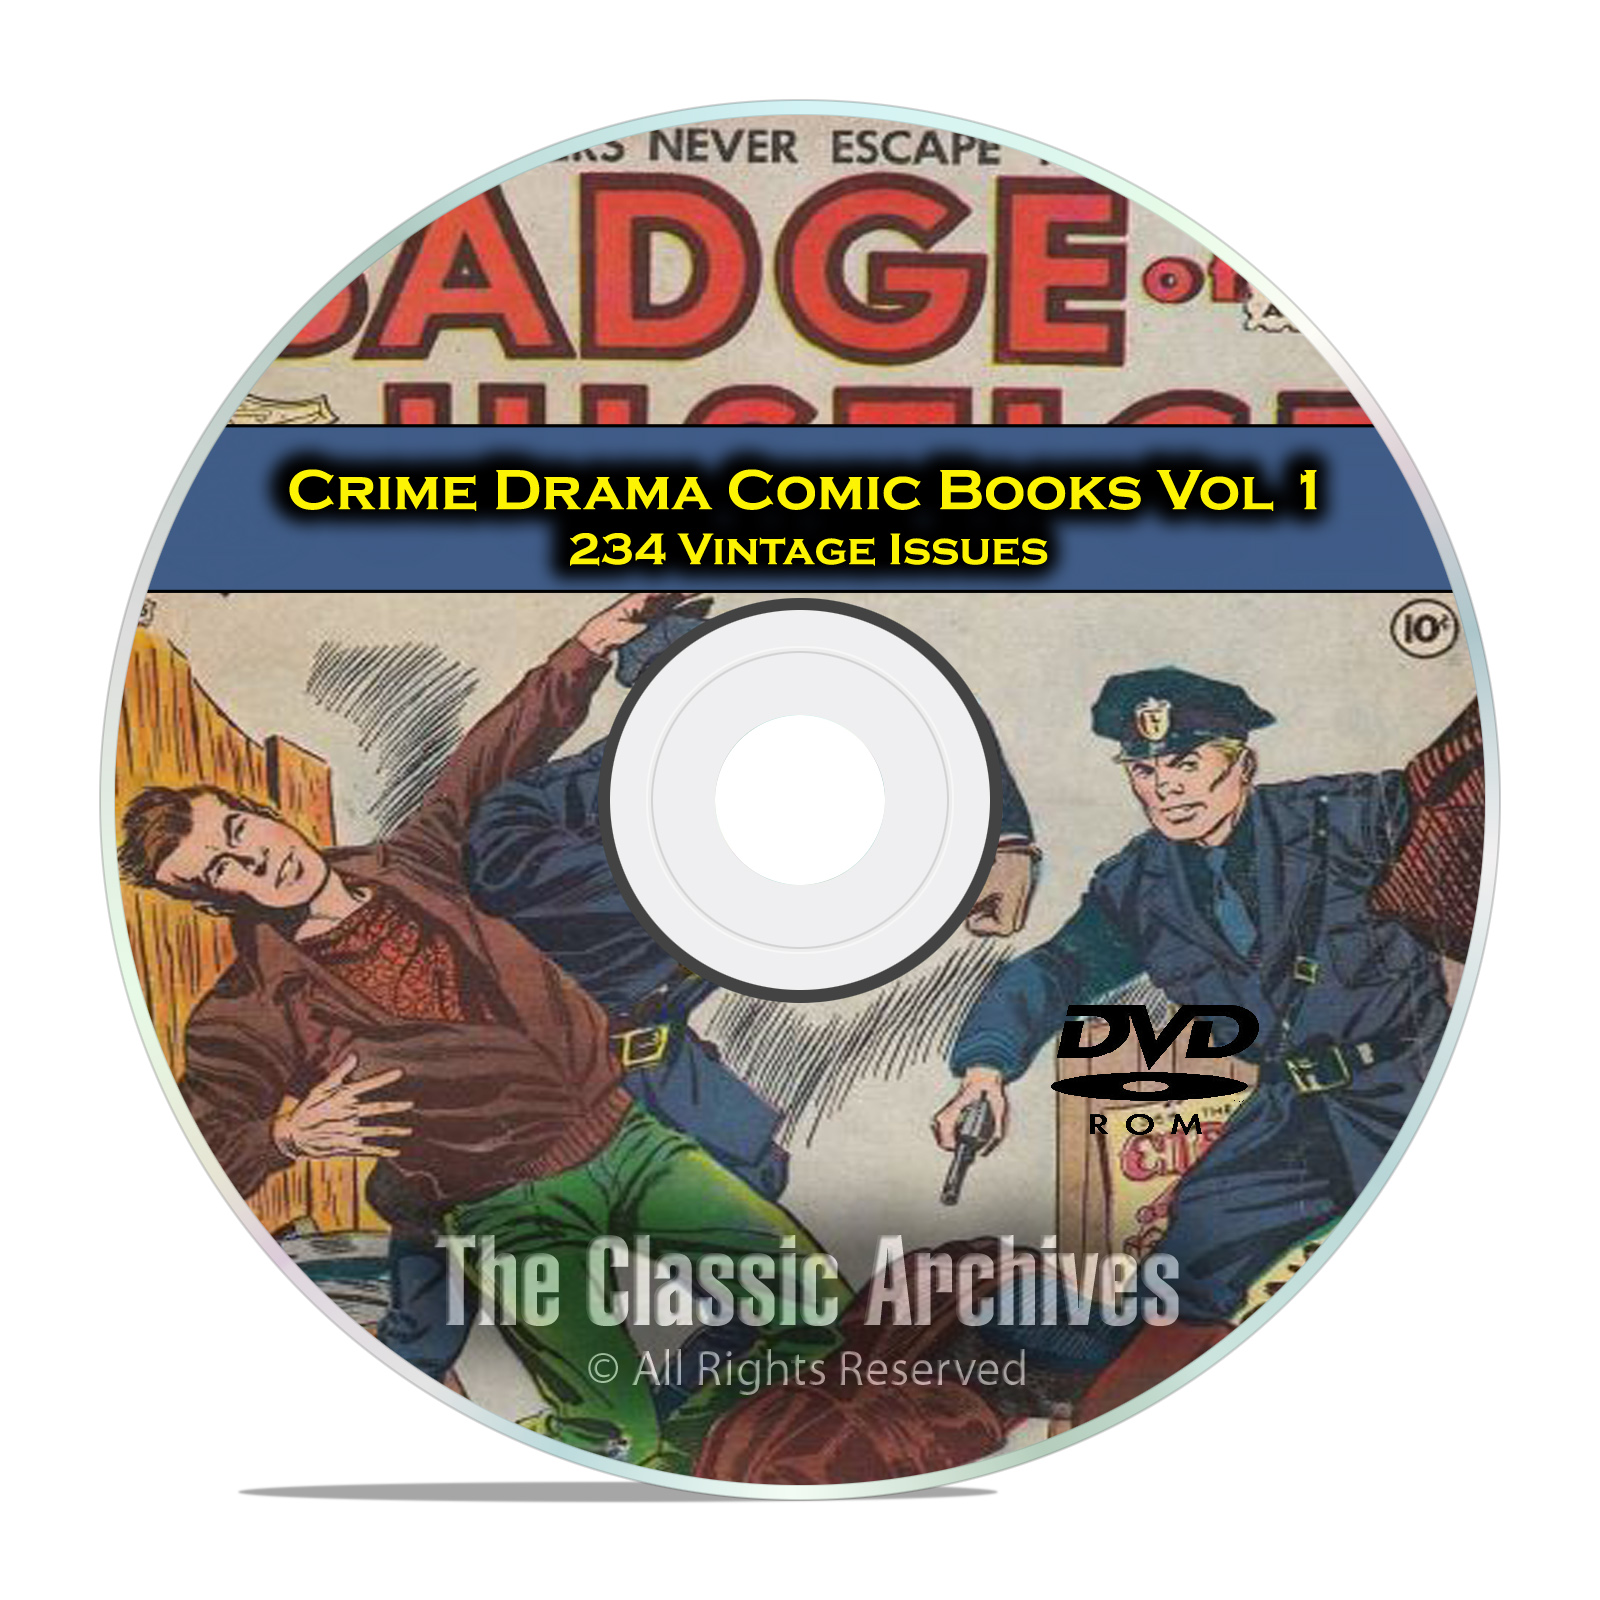 Crime Drama, Suspense, Vol 1, Badge of Justice, Cop, Golden Age Comics DVD